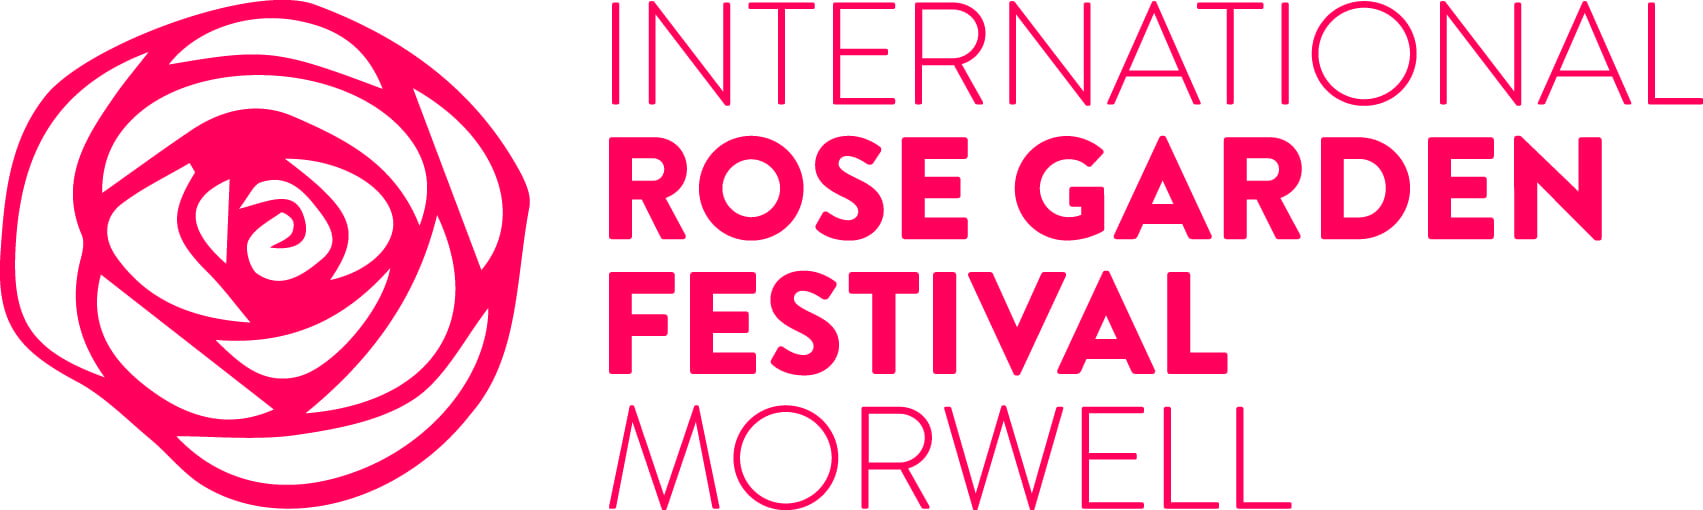 International Rose Garden Festival Morwell Logo